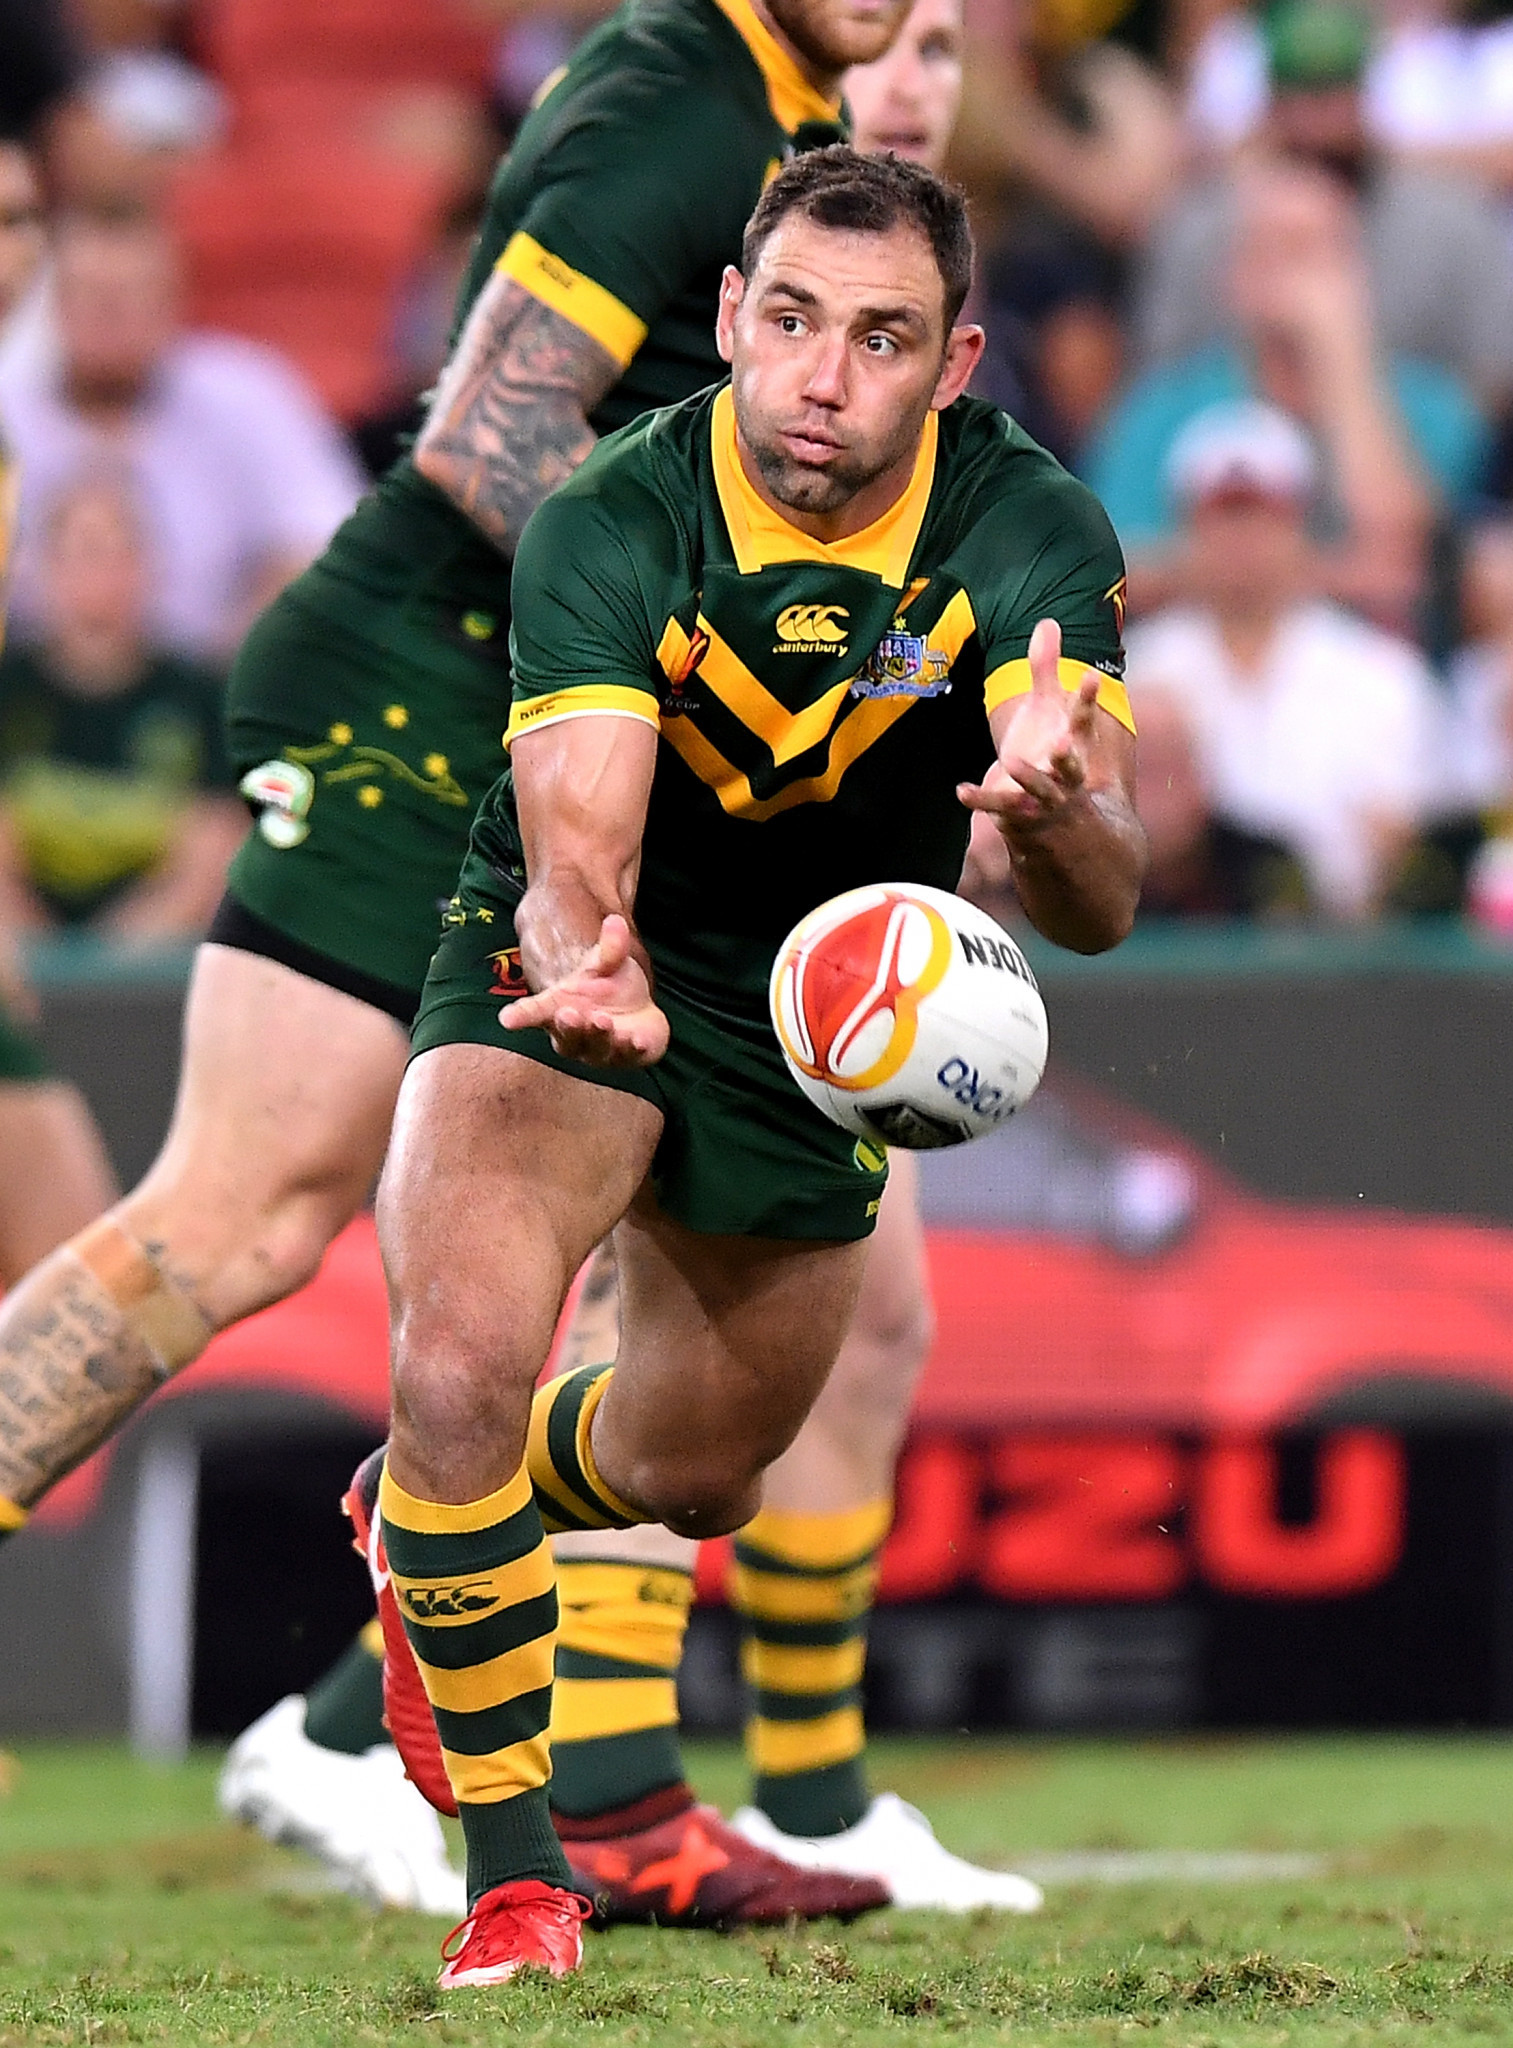 Cameron Smith, of Australia, seen here during the 2017 Rugby League World Cup Semi Final against Fiji, has won the Golden Boot Award